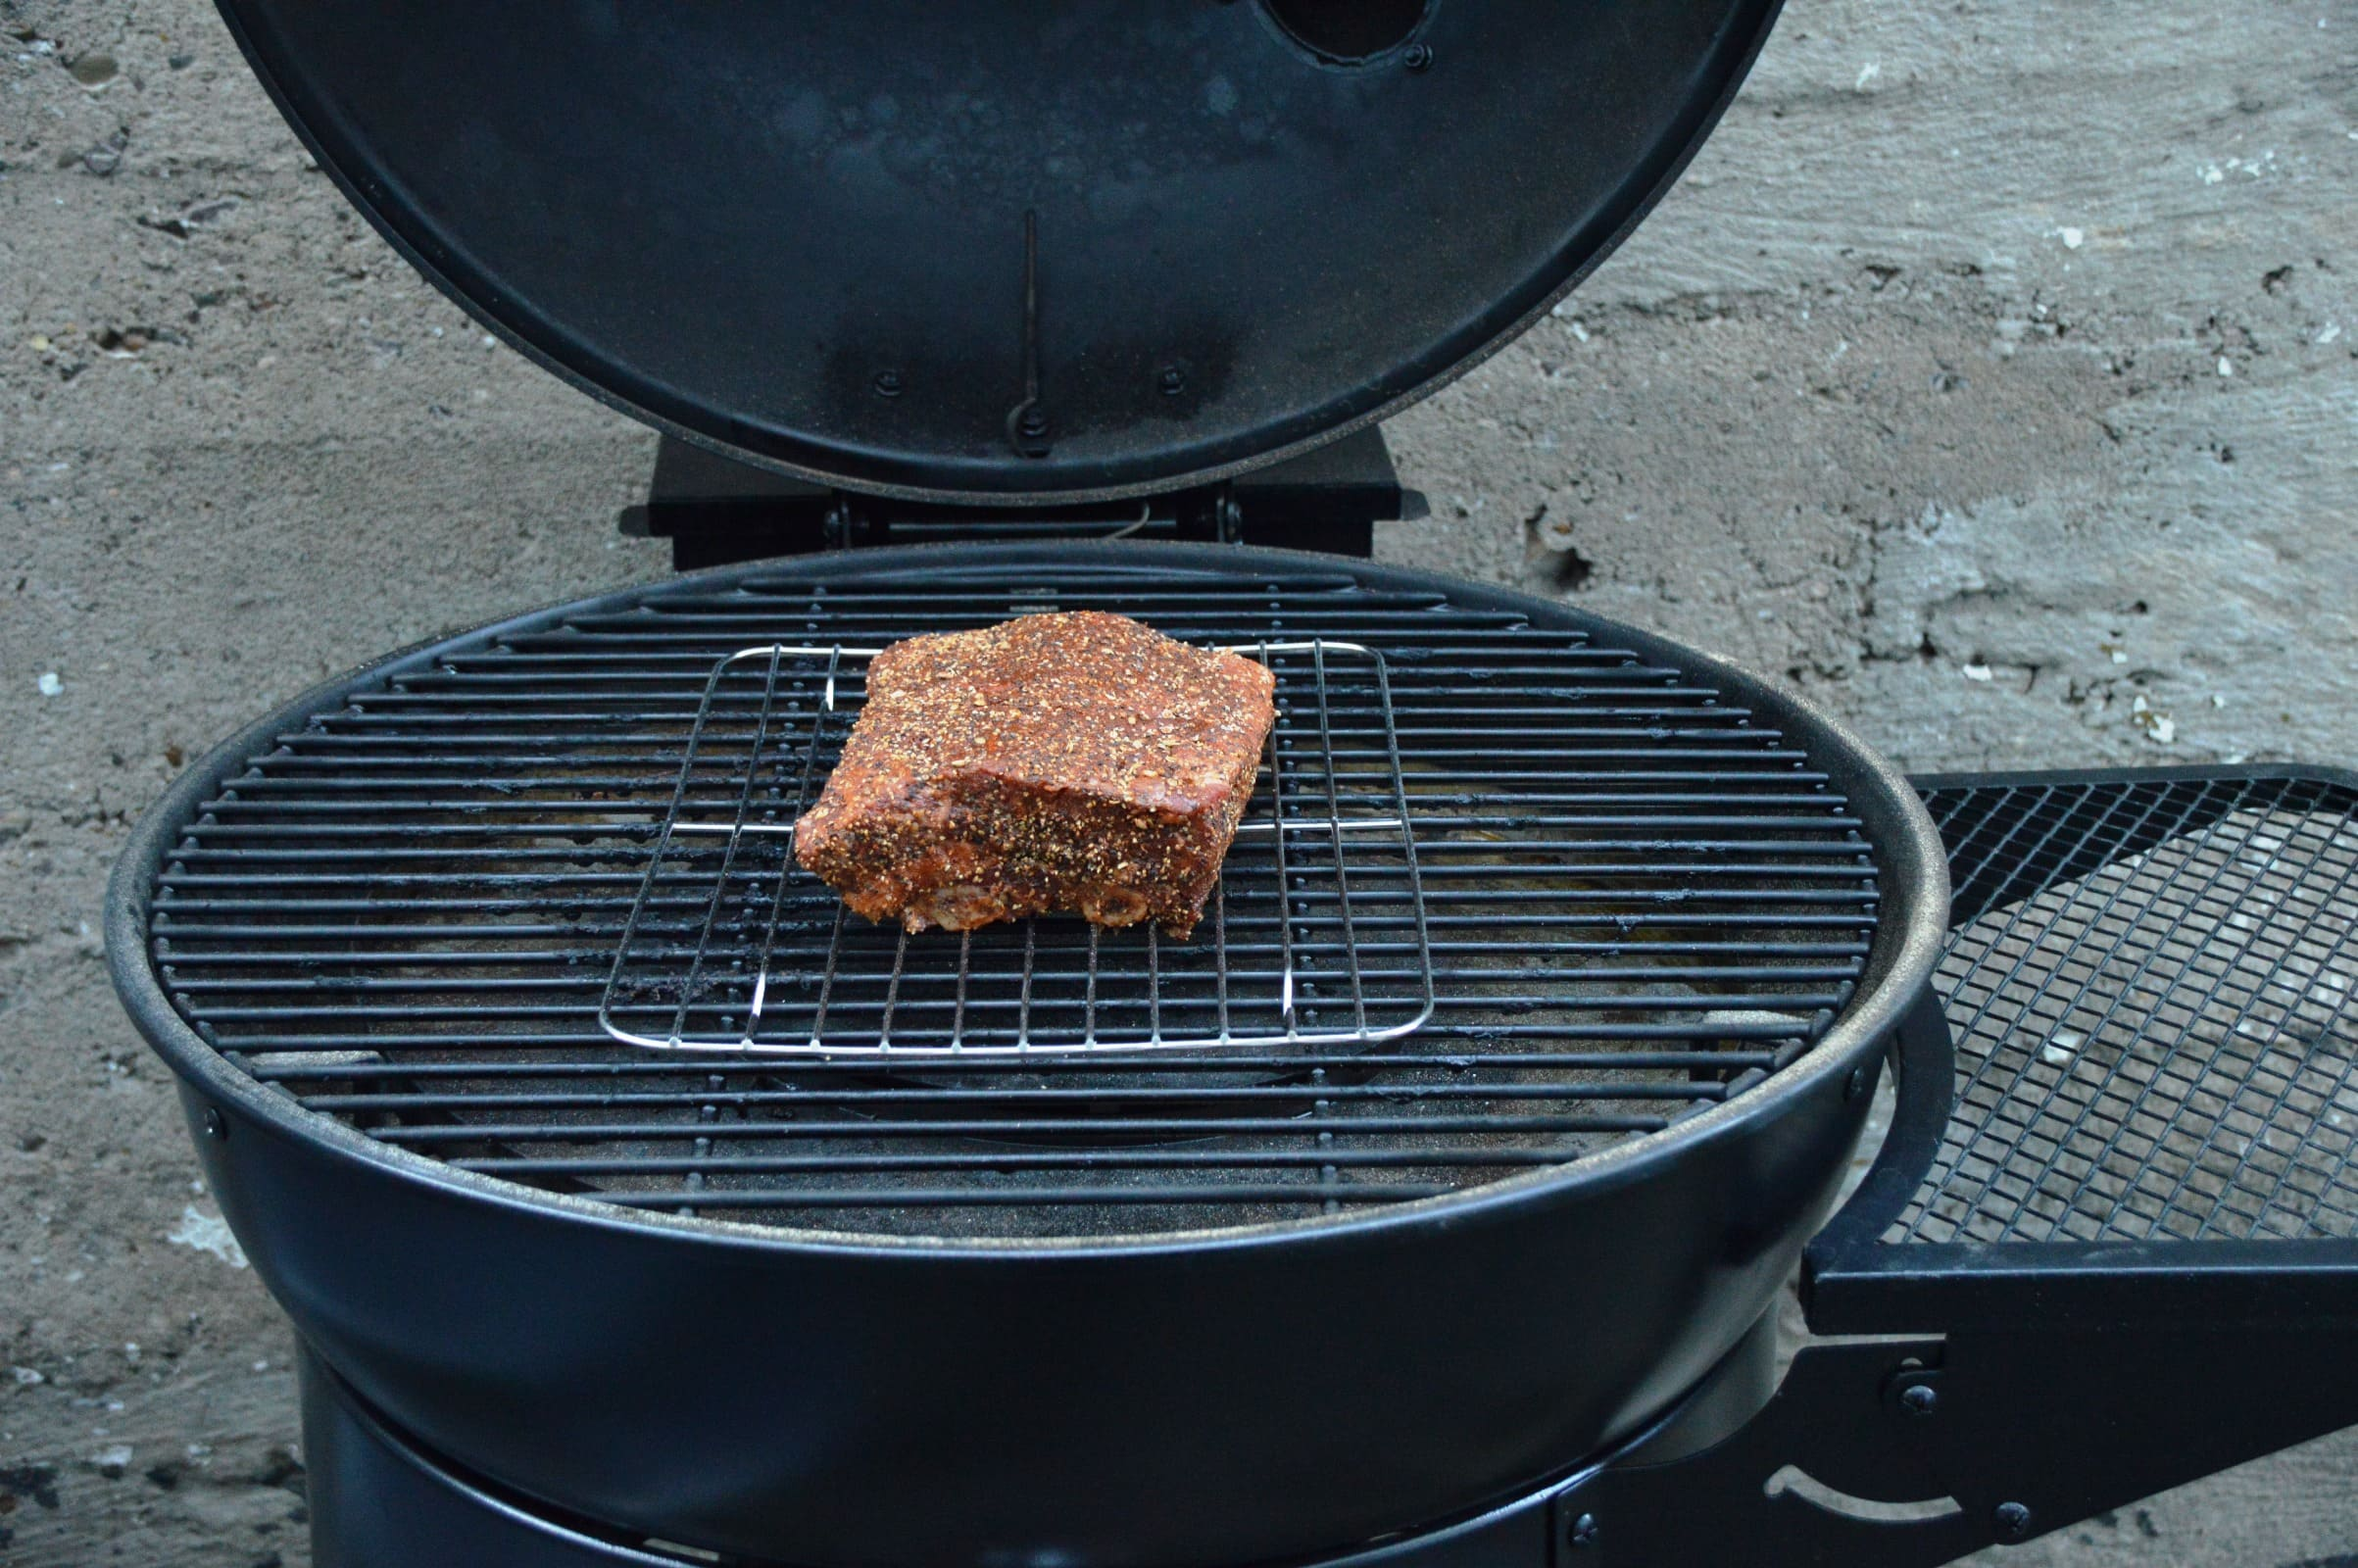 Landmann Gasgrill Wok : Angegrillt: landmann pellet kettle im test bacon zum steak